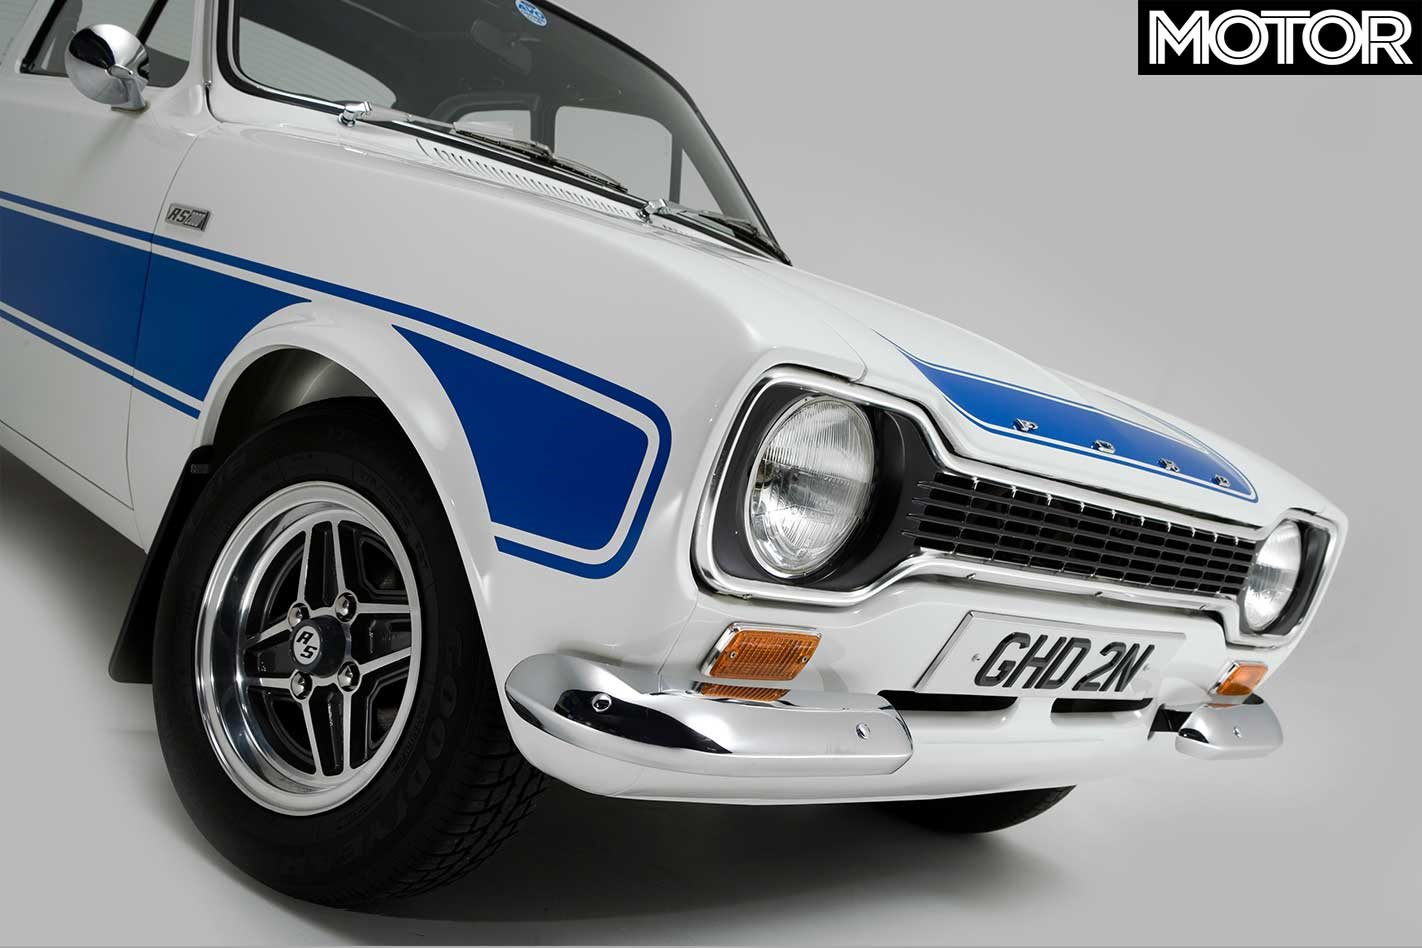 Ford escort rs 2000 top gear